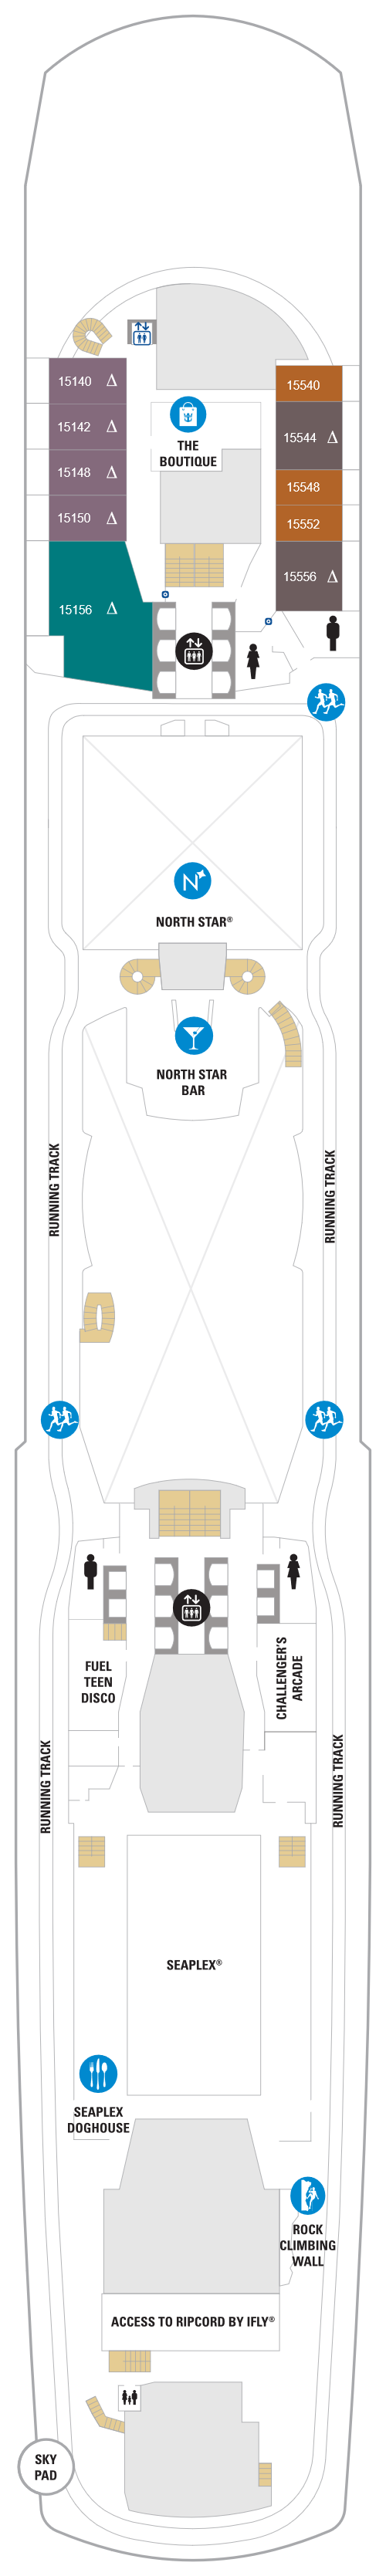 Spectrum Of The Seas Deck 15 layout